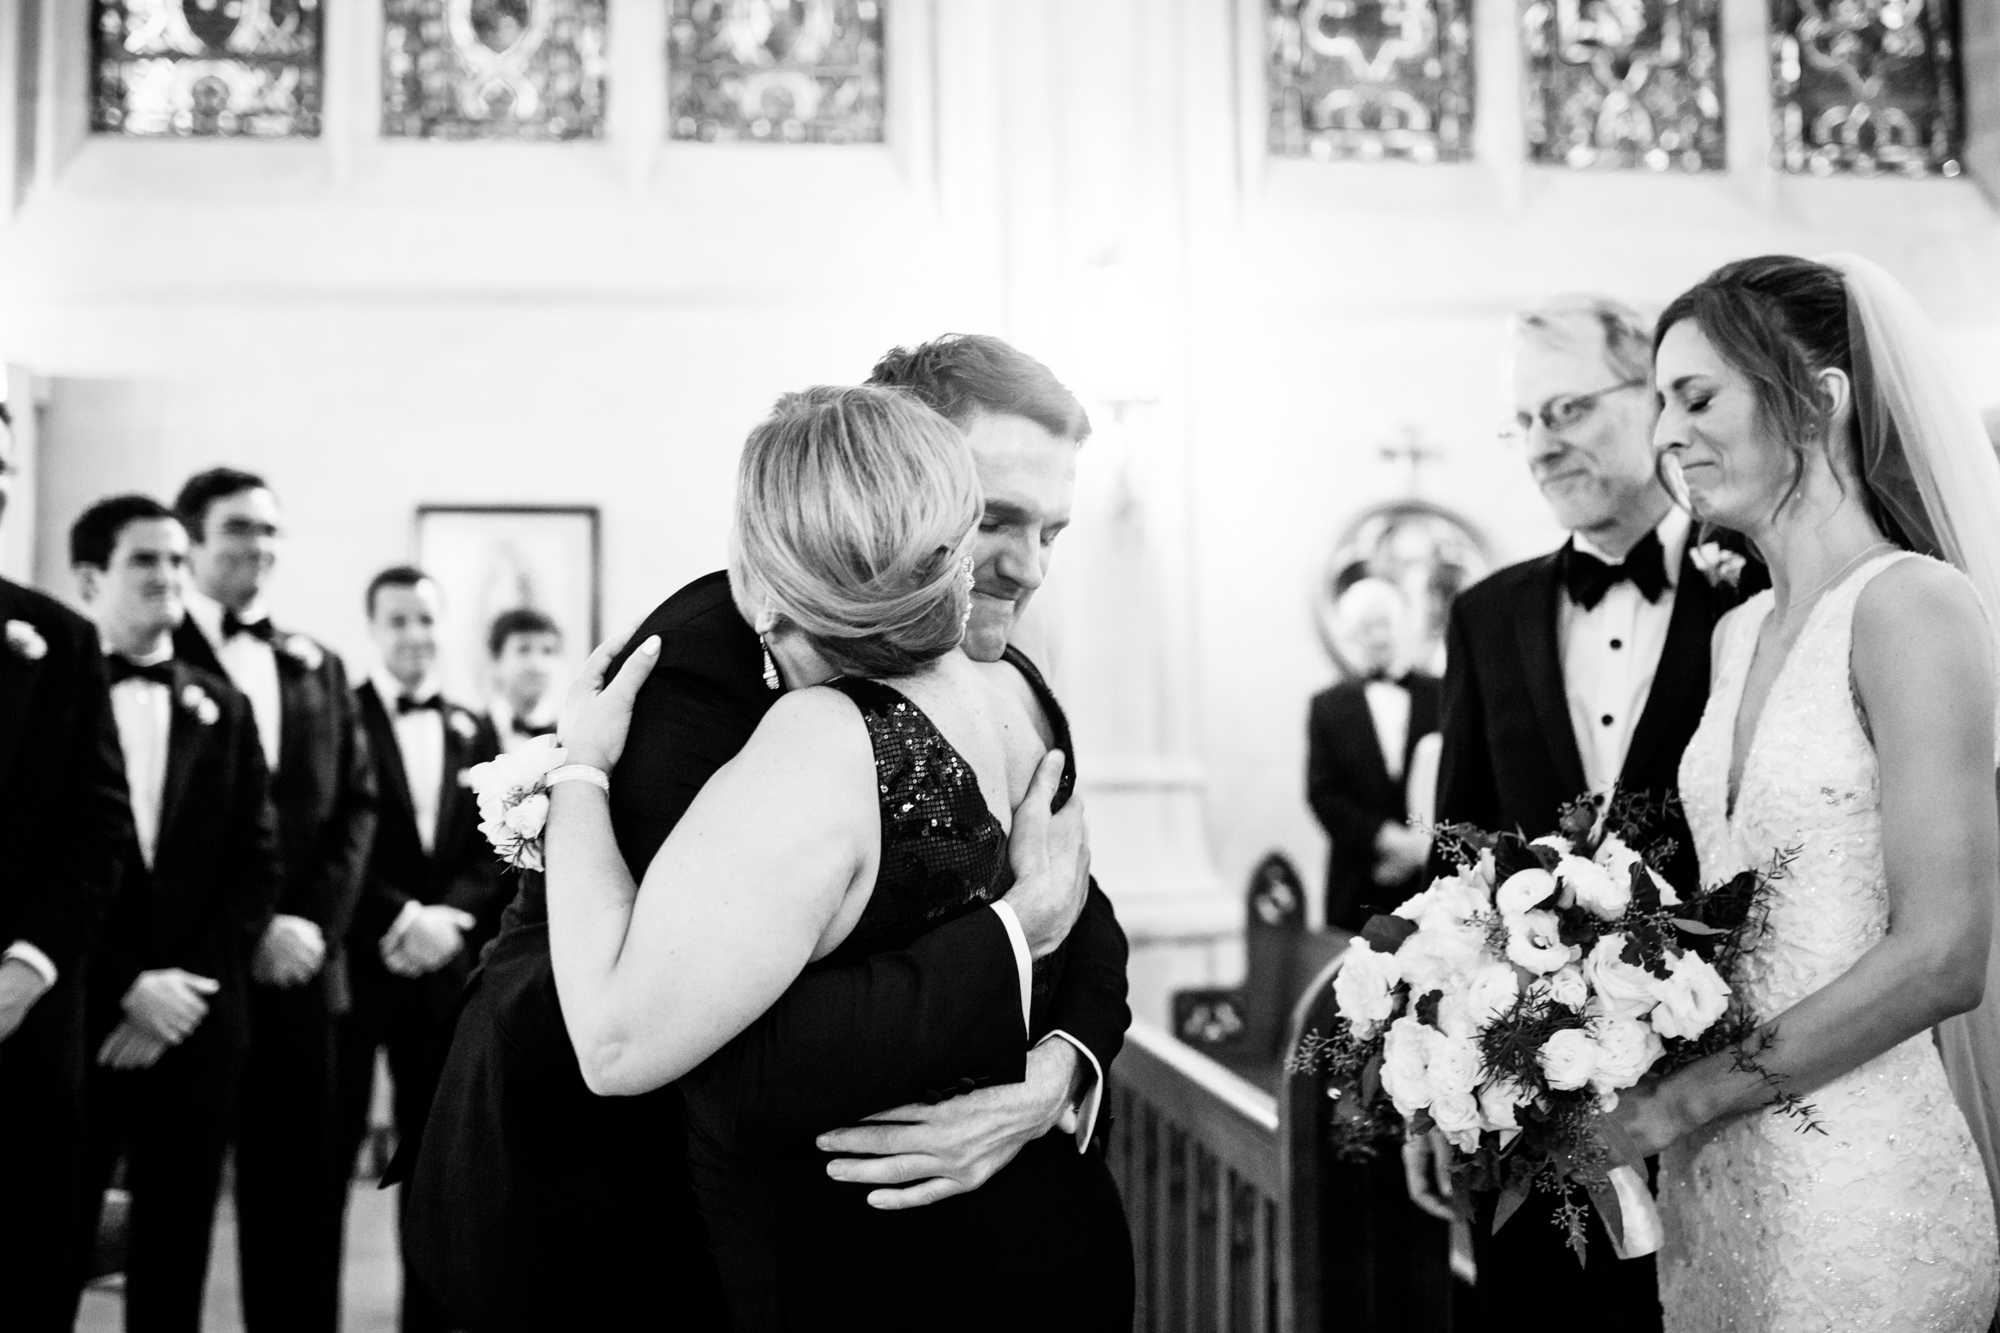 Documentary wedding photography in Chicago - St James Chapel Wedding Ceremony